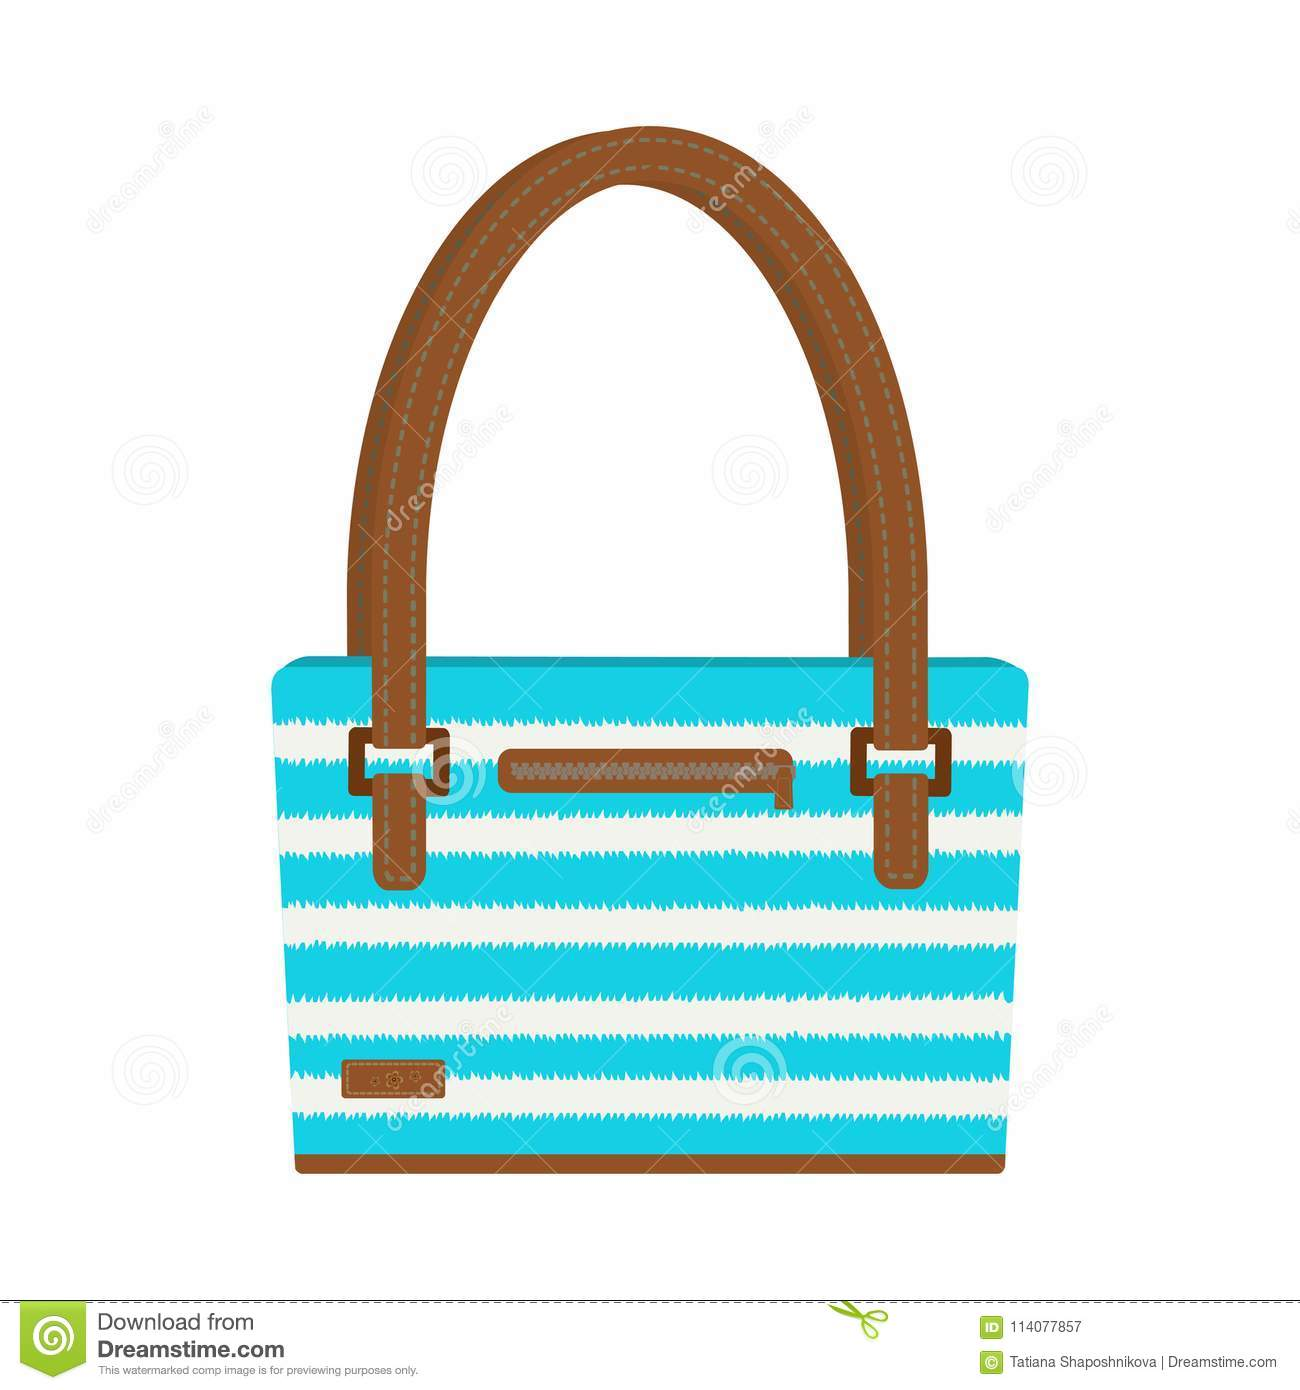 f60b5d81d Vector illustration of beach bag in blue and white stripes with leather  handles and zigzag. Decorated with stitch and flowers. Isolated on white  background.